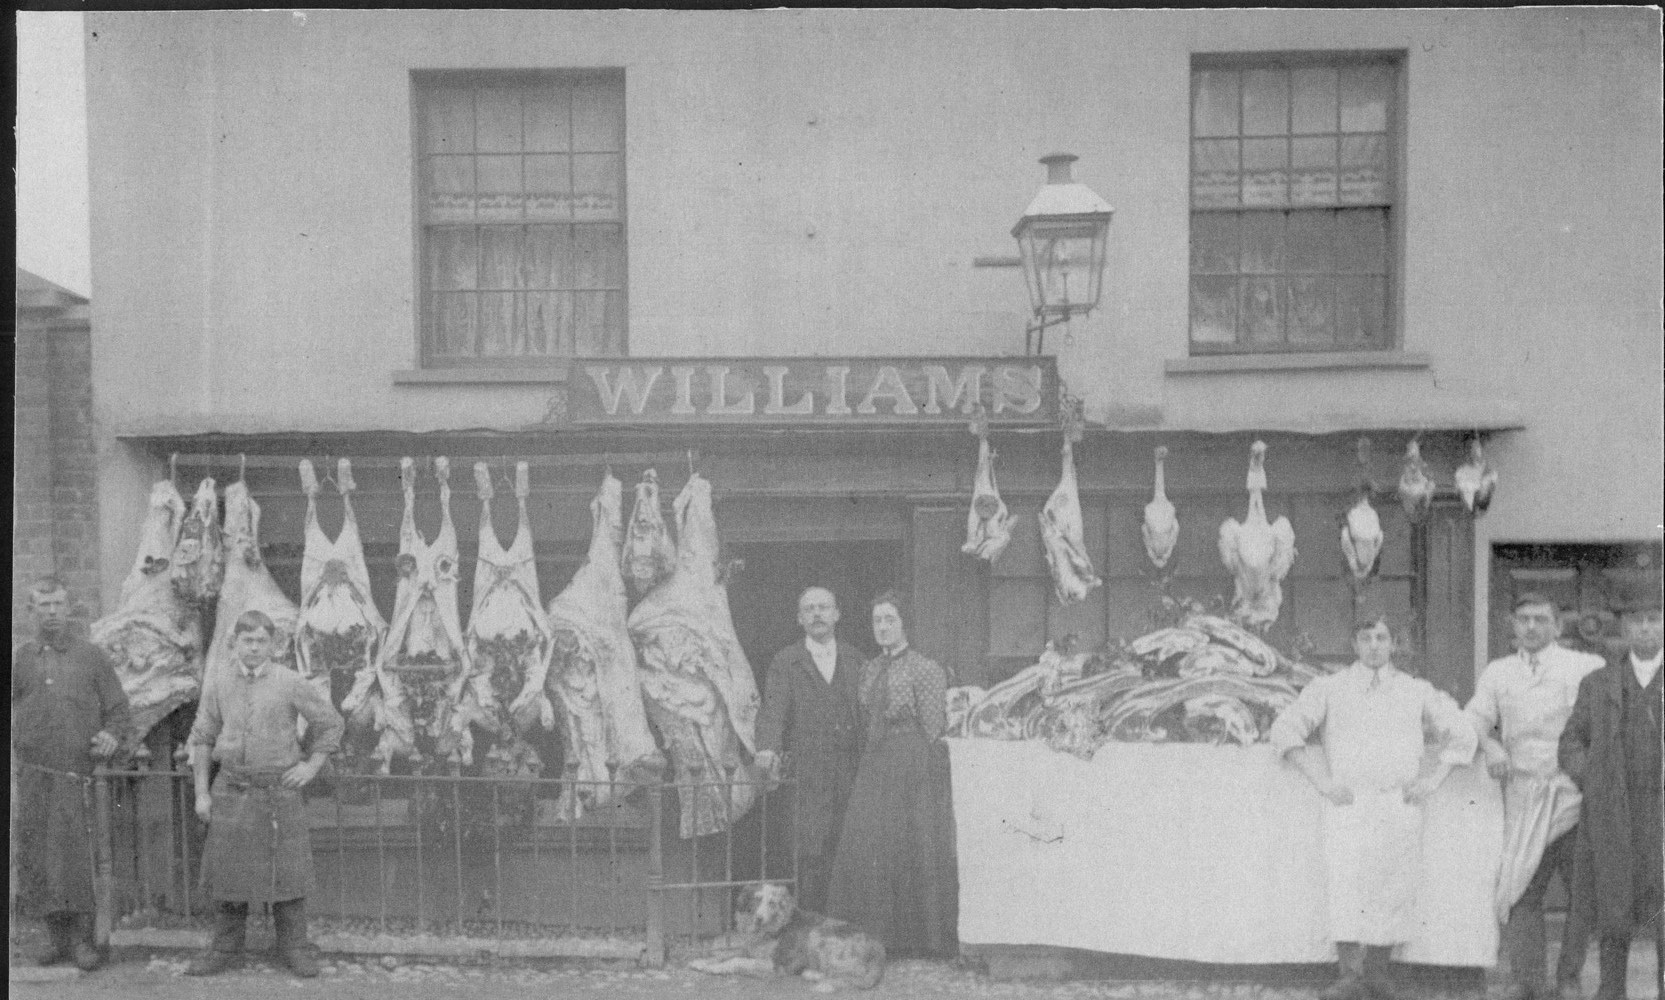 Uffculme. Williams' butchers' shop with carcasses & poultry on display outside.-1